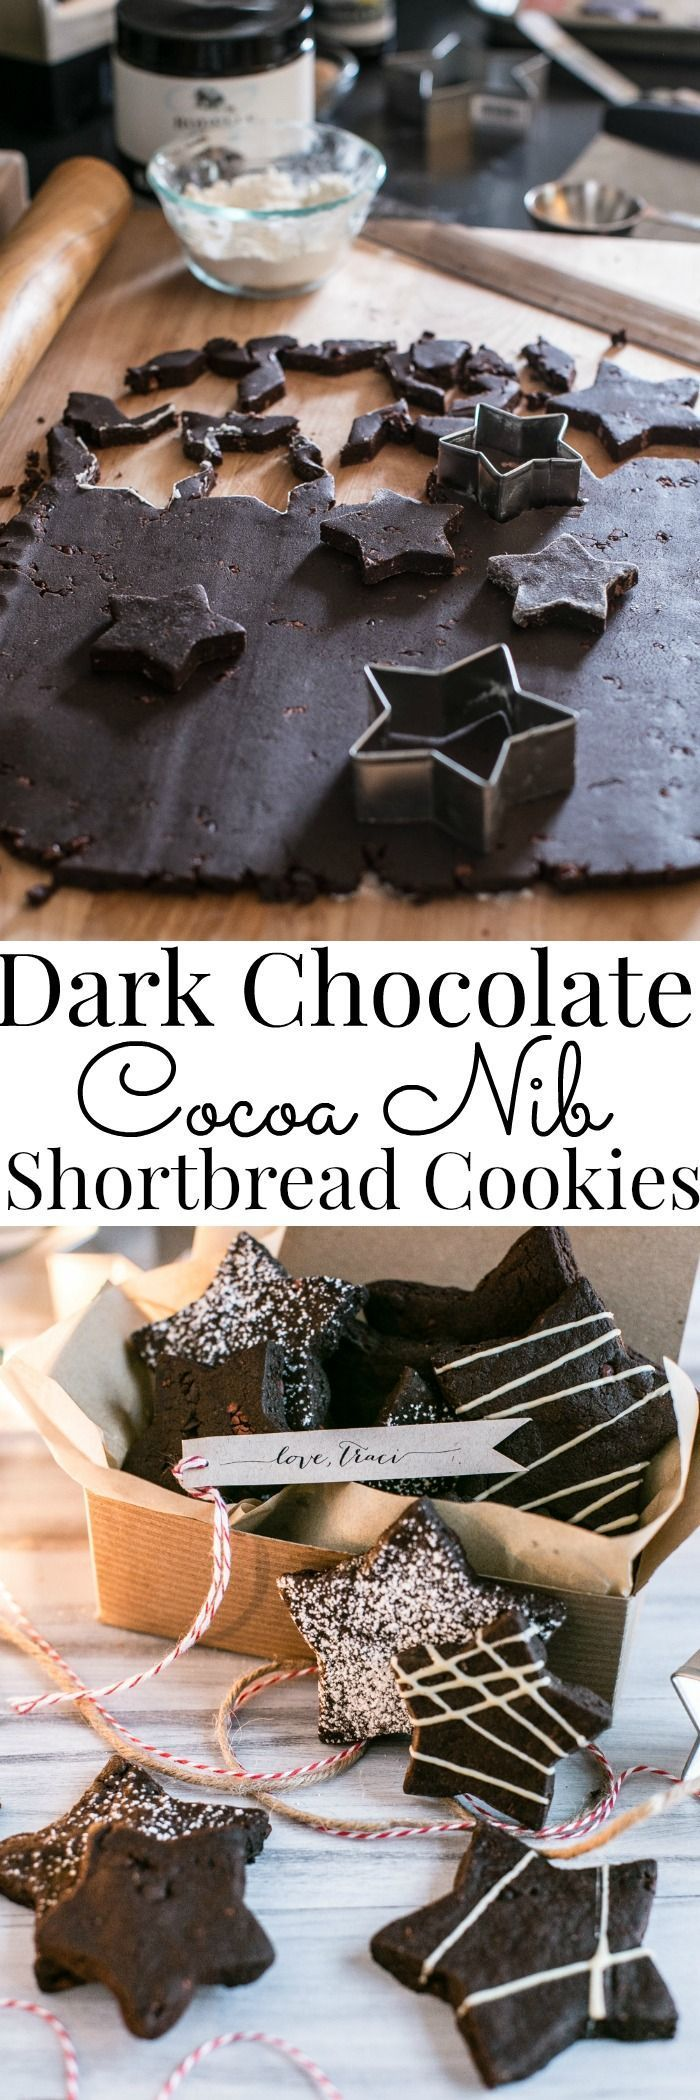 Fun and easy to make, these rich chocolatey cookies make gorgeous and delicious gifts! | Dark Chocolate Cocoa Nib Shortbread Cookies | Homemade Gifts | Shortbread Cookie Recipes (christmas cookie jars)